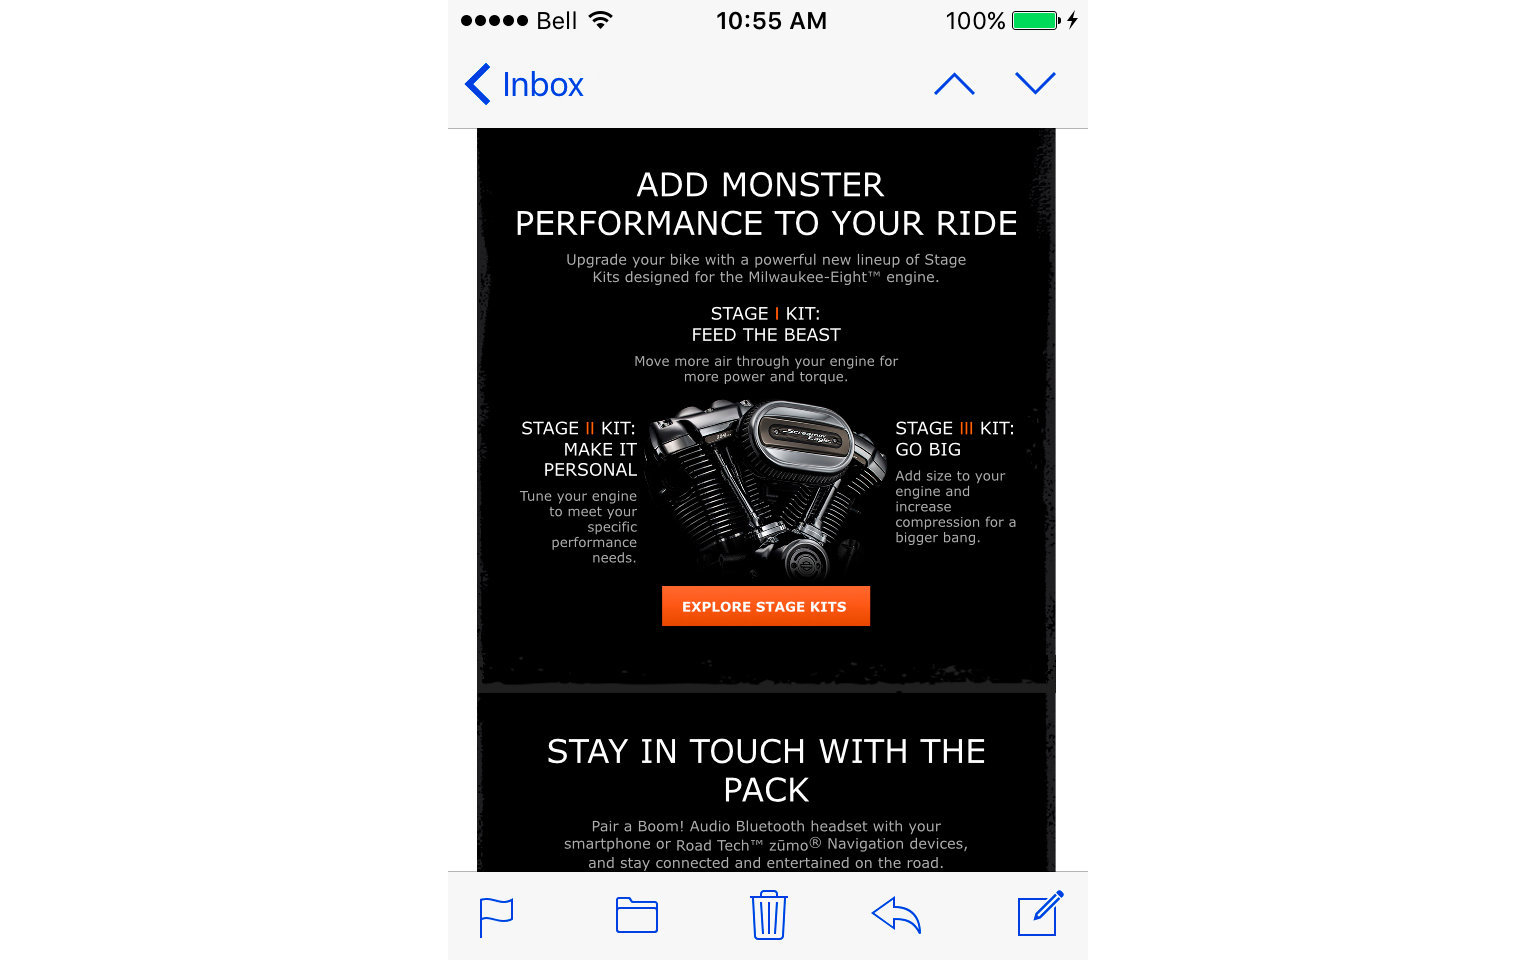 HARLEY-DAVIDSON ACCESSORIES EMAIL  5/10